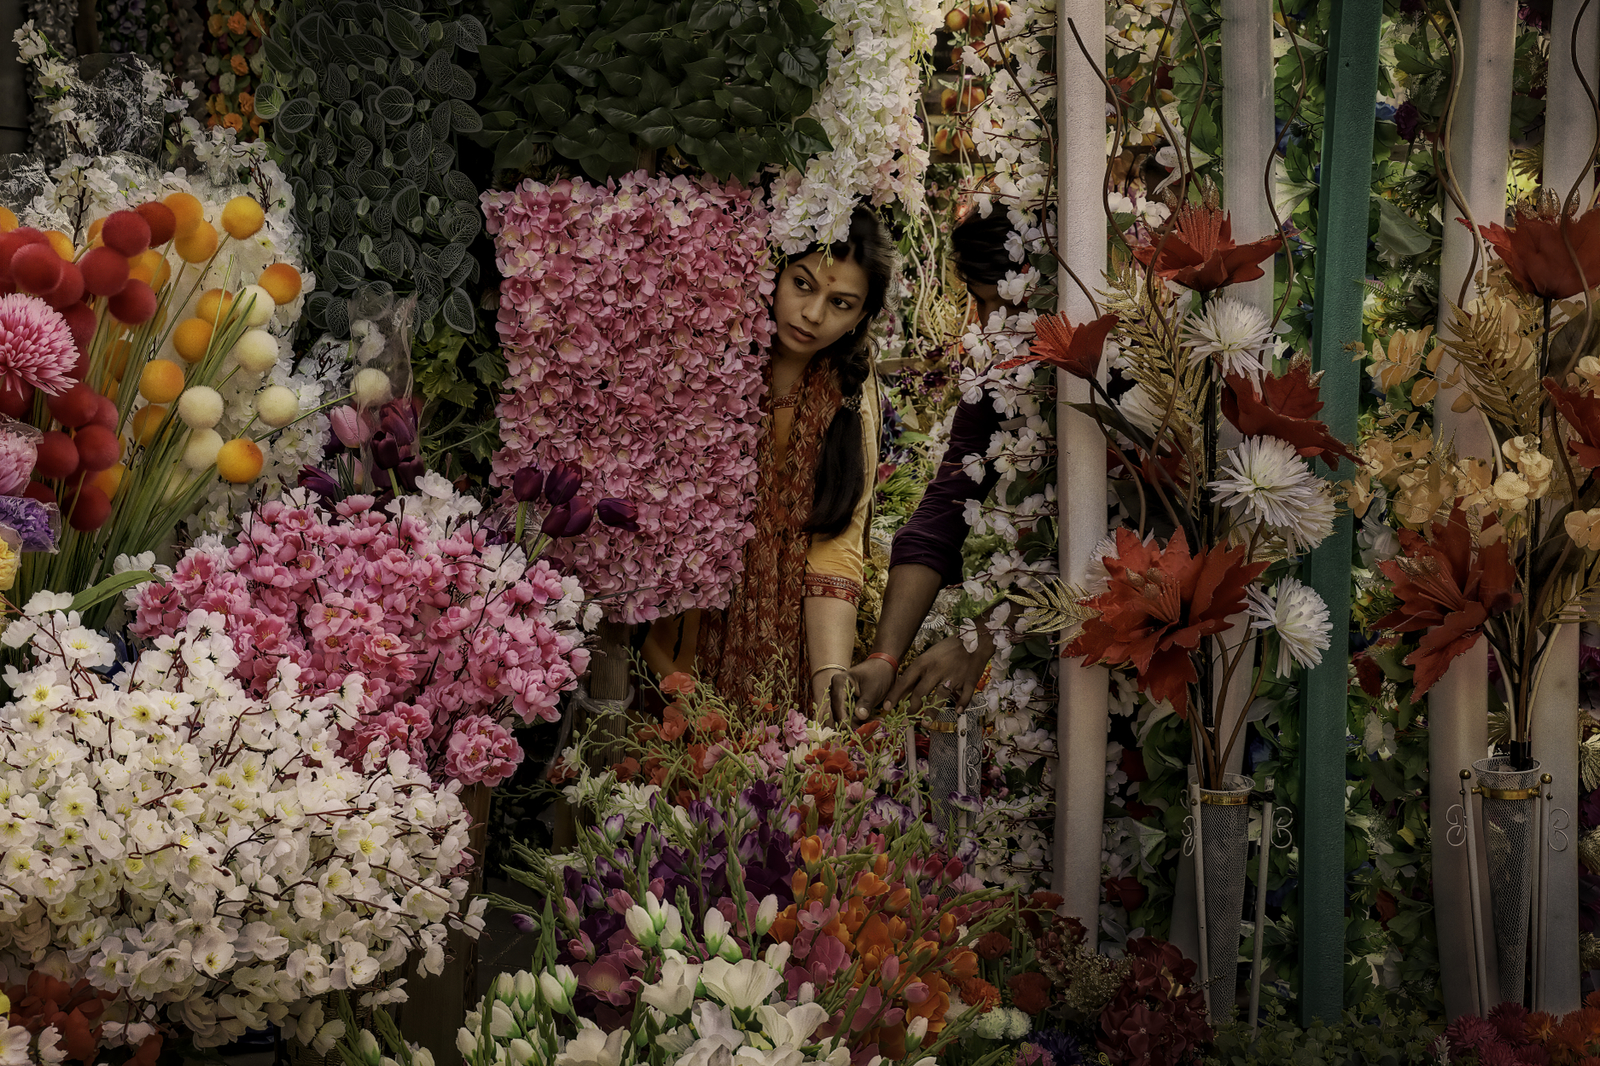 India's Plastic Transformed into Chinese Flowers